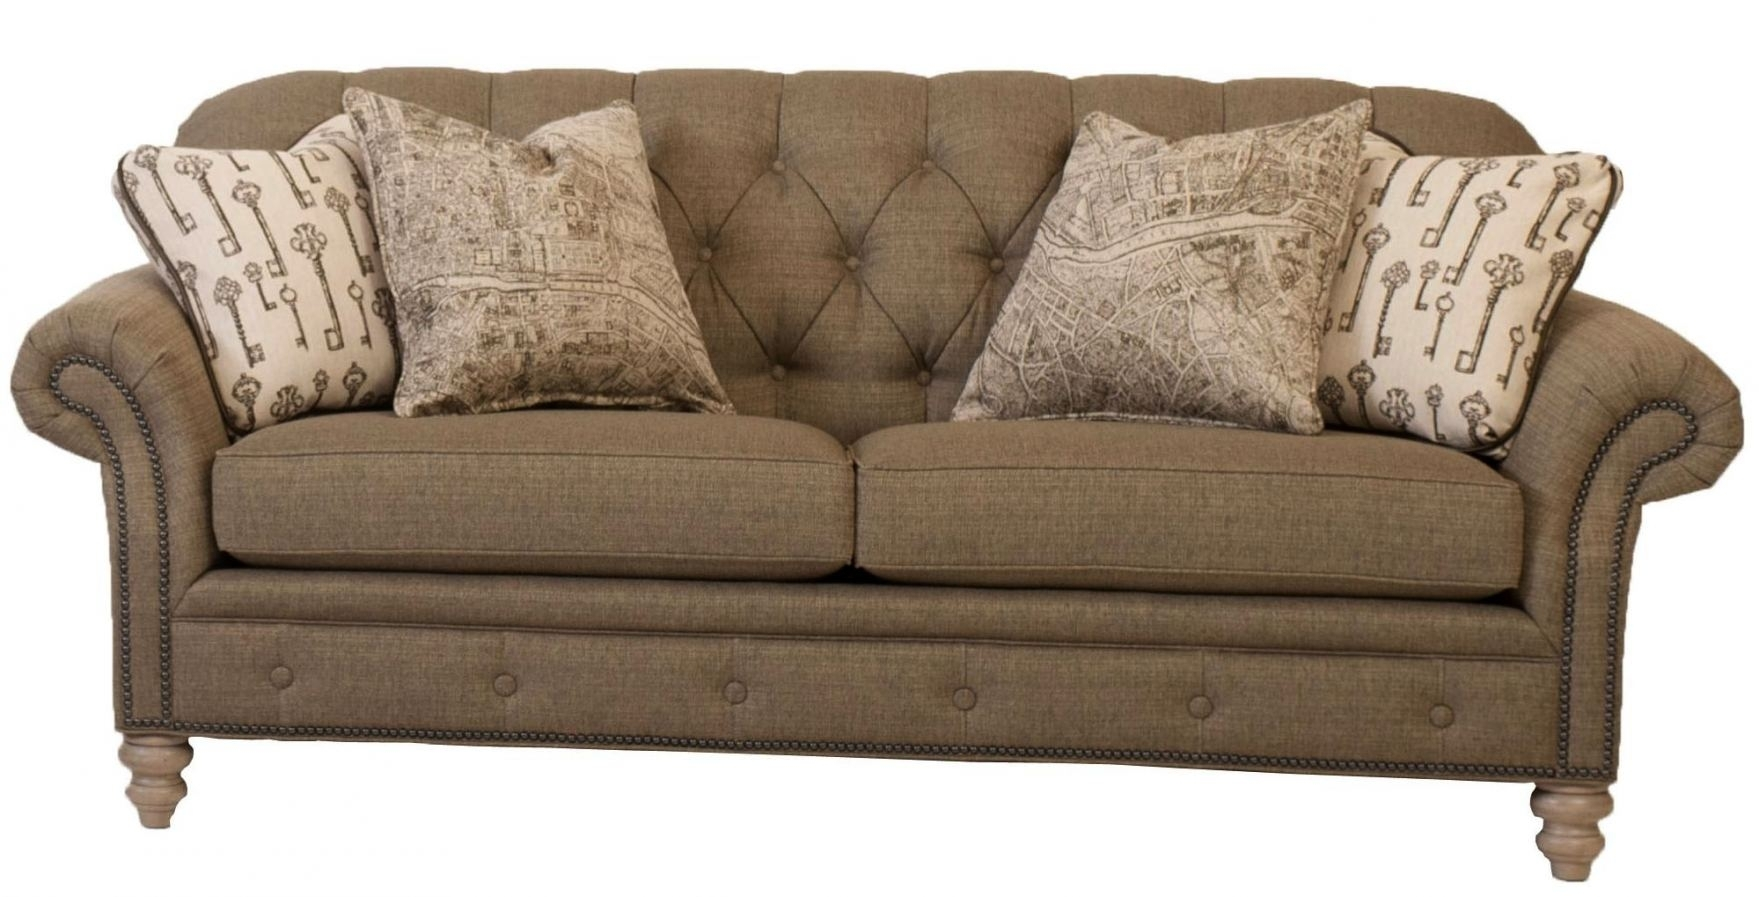 Fresh Sectional Sofa With Nailhead Trim 64 For Your Sofas And Inside Sectional Sofas With Nailheads (View 9 of 10)